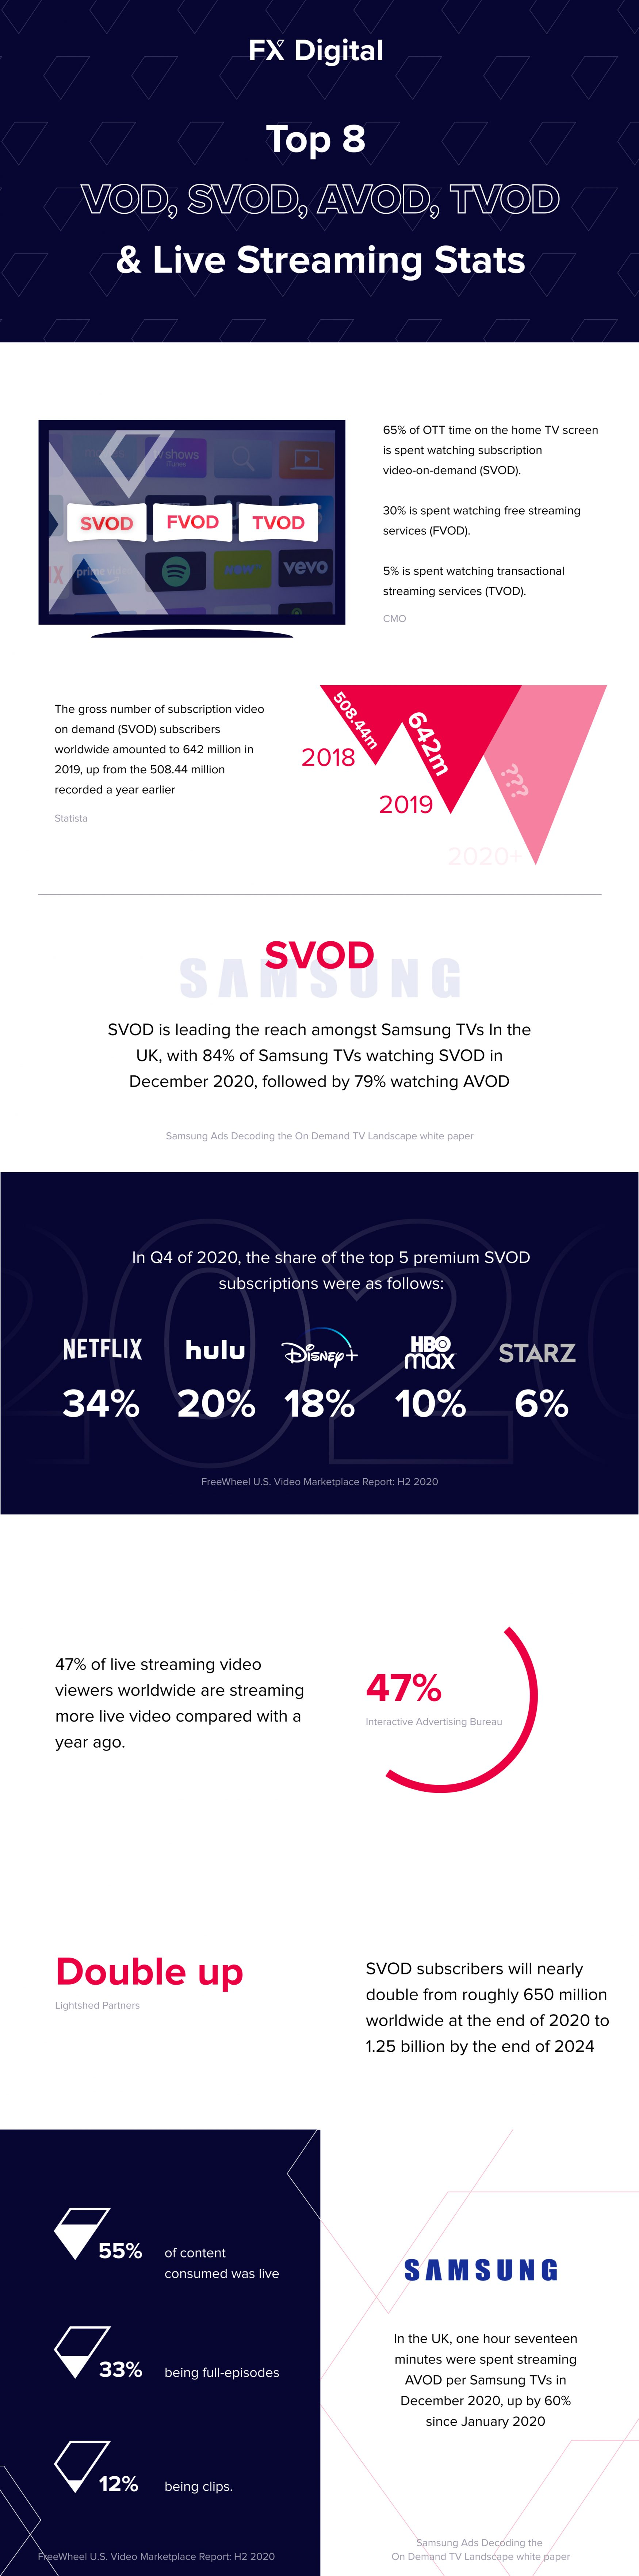 Top 8 VOD, SVOD, AVOD, TVOD & Live Streaming Stats